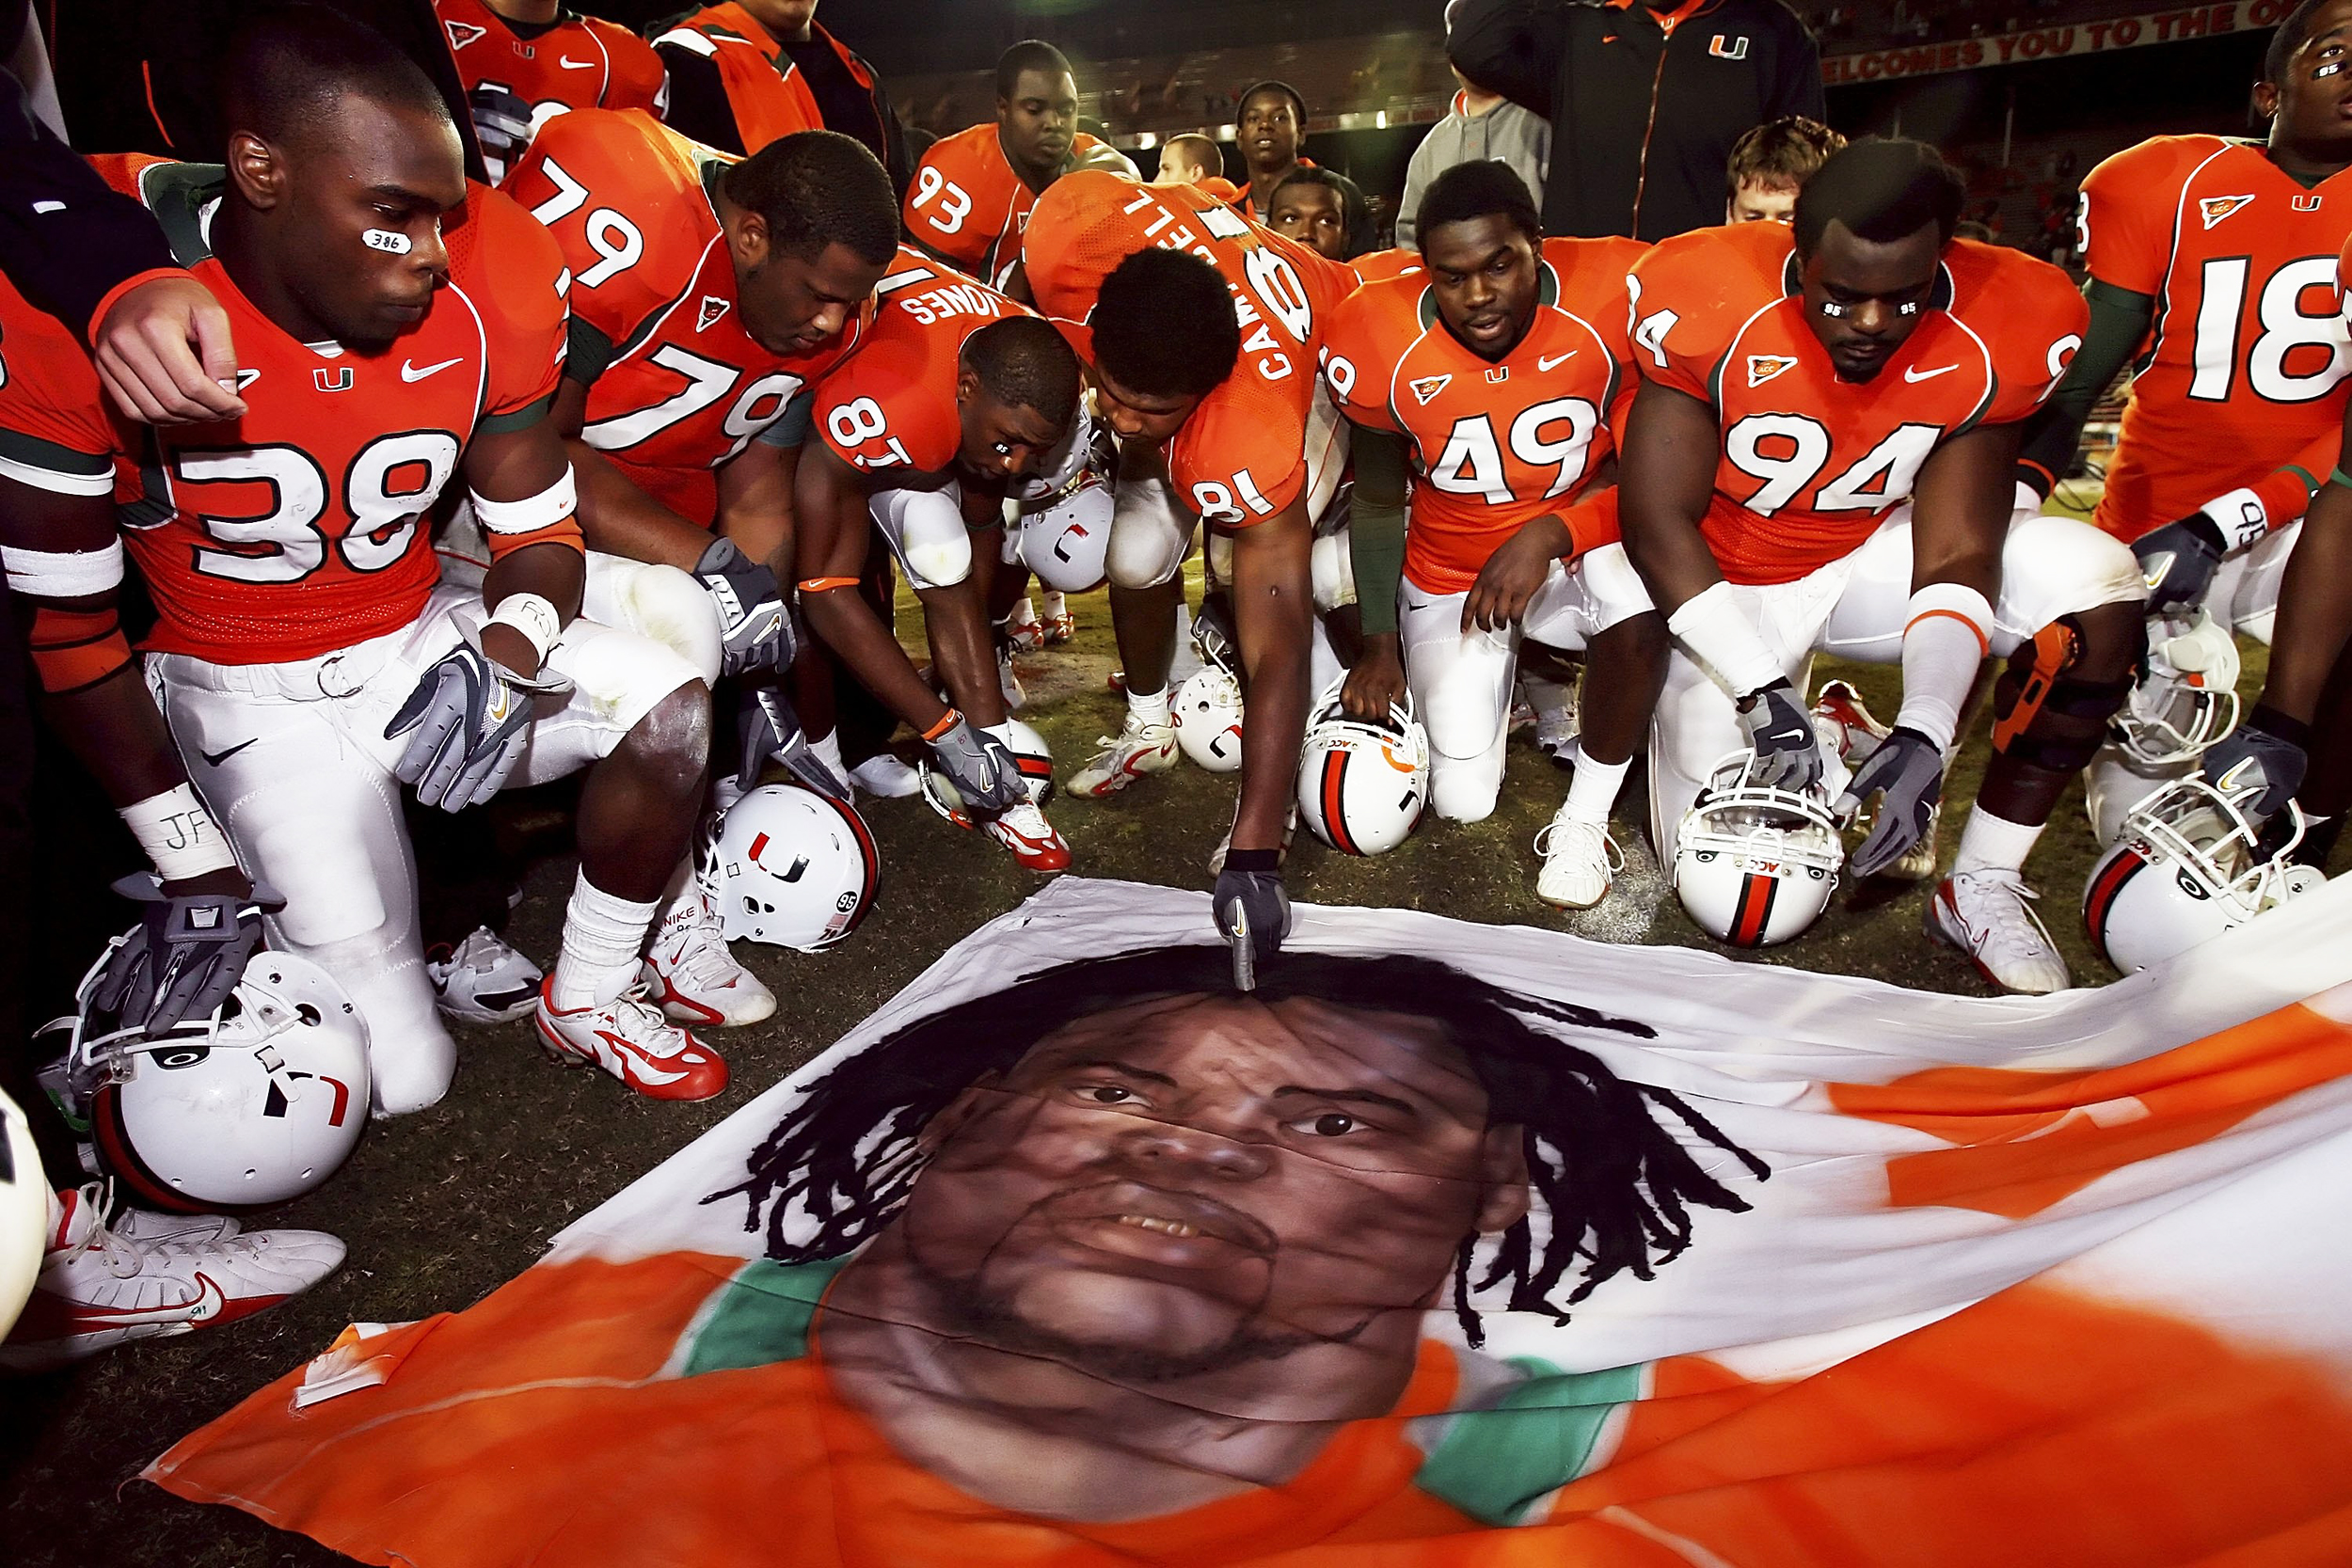 Police arrest teammate in connection with 2006 slaying of former University of Miami football player